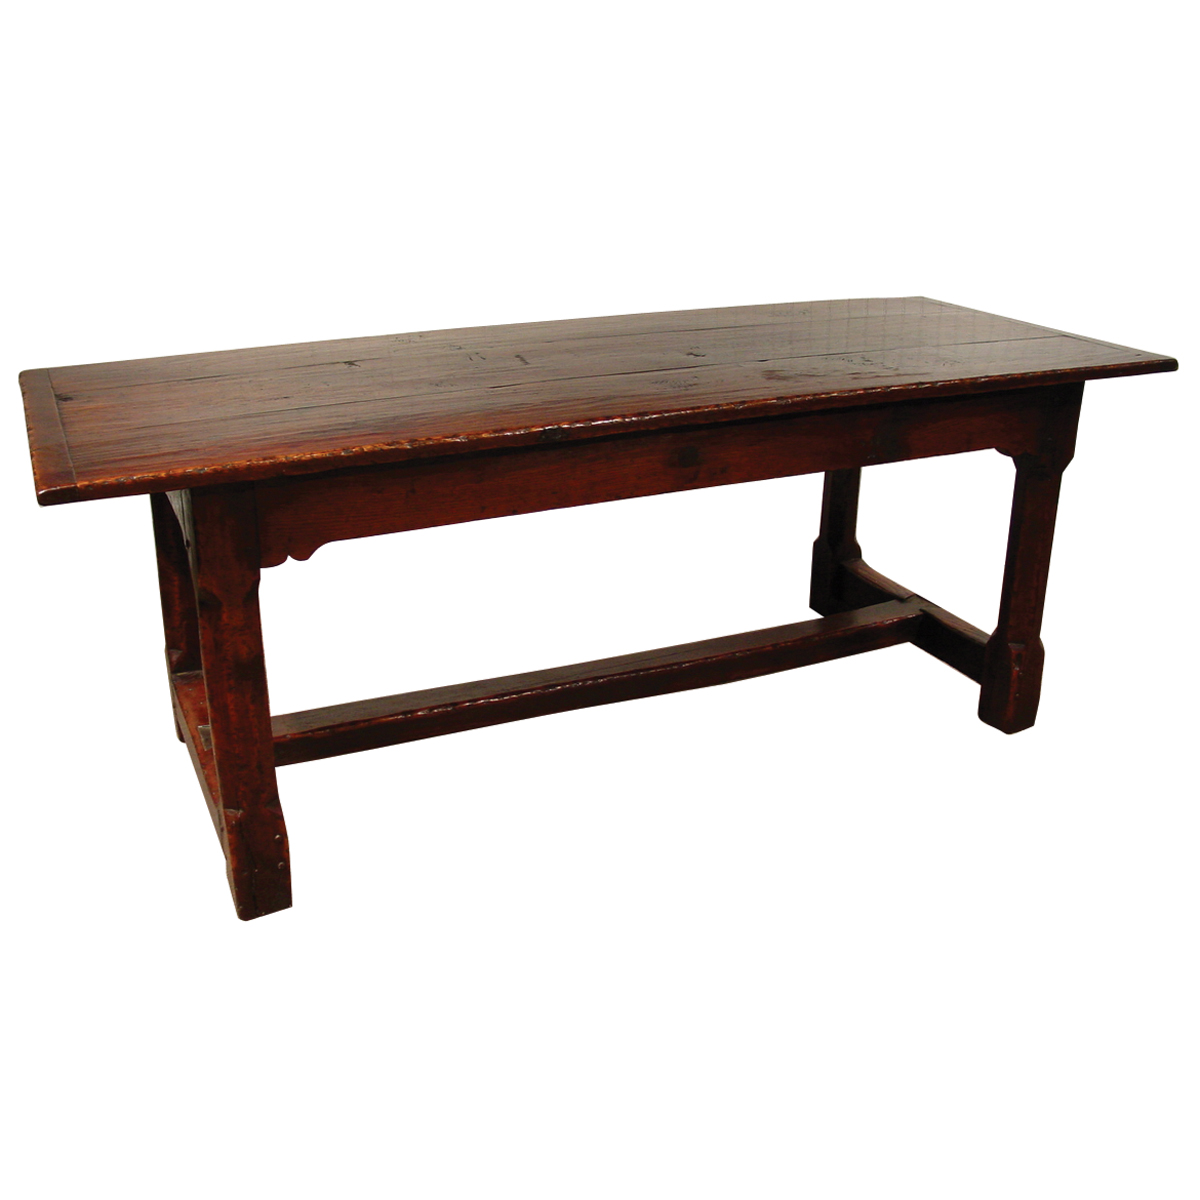 Rustic Oak finish narrow refectory table : 58ae0ce85e09c7280ab5078912294table from englishmans.webflow.io size 1200 x 1200 jpeg 285kB